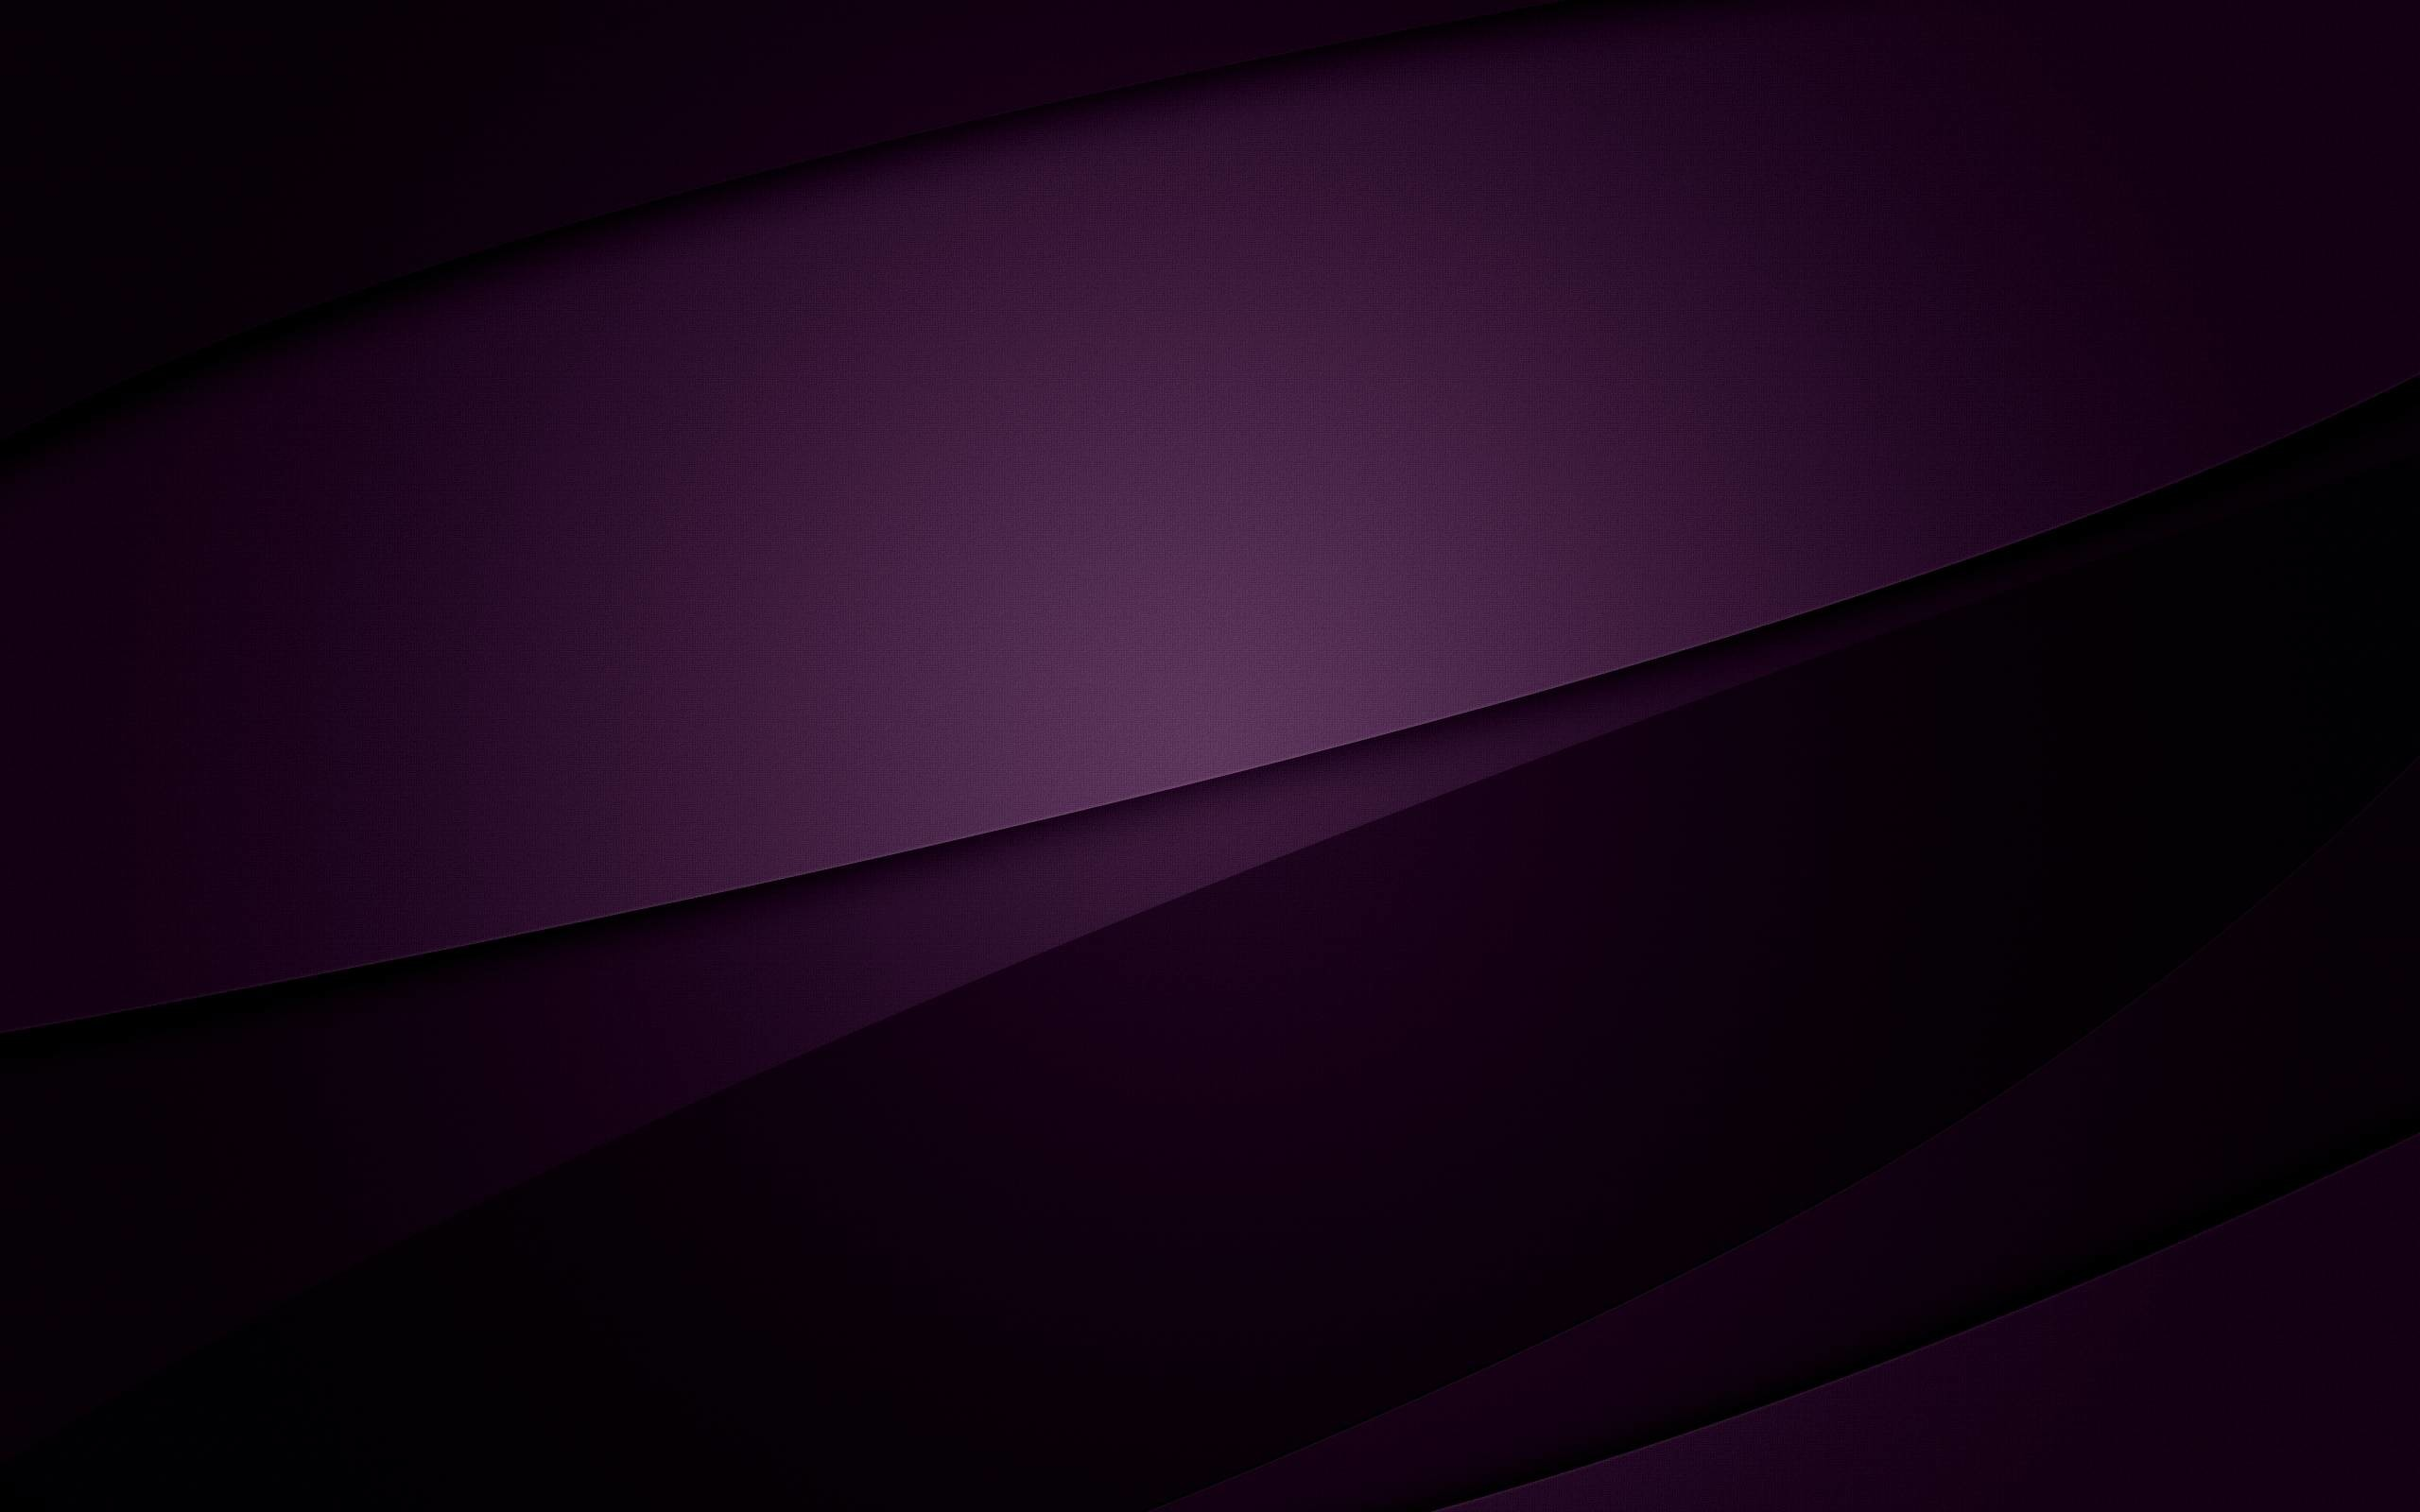 2560x1600 Free Purple Backgrounds 18531 1600x1200 px